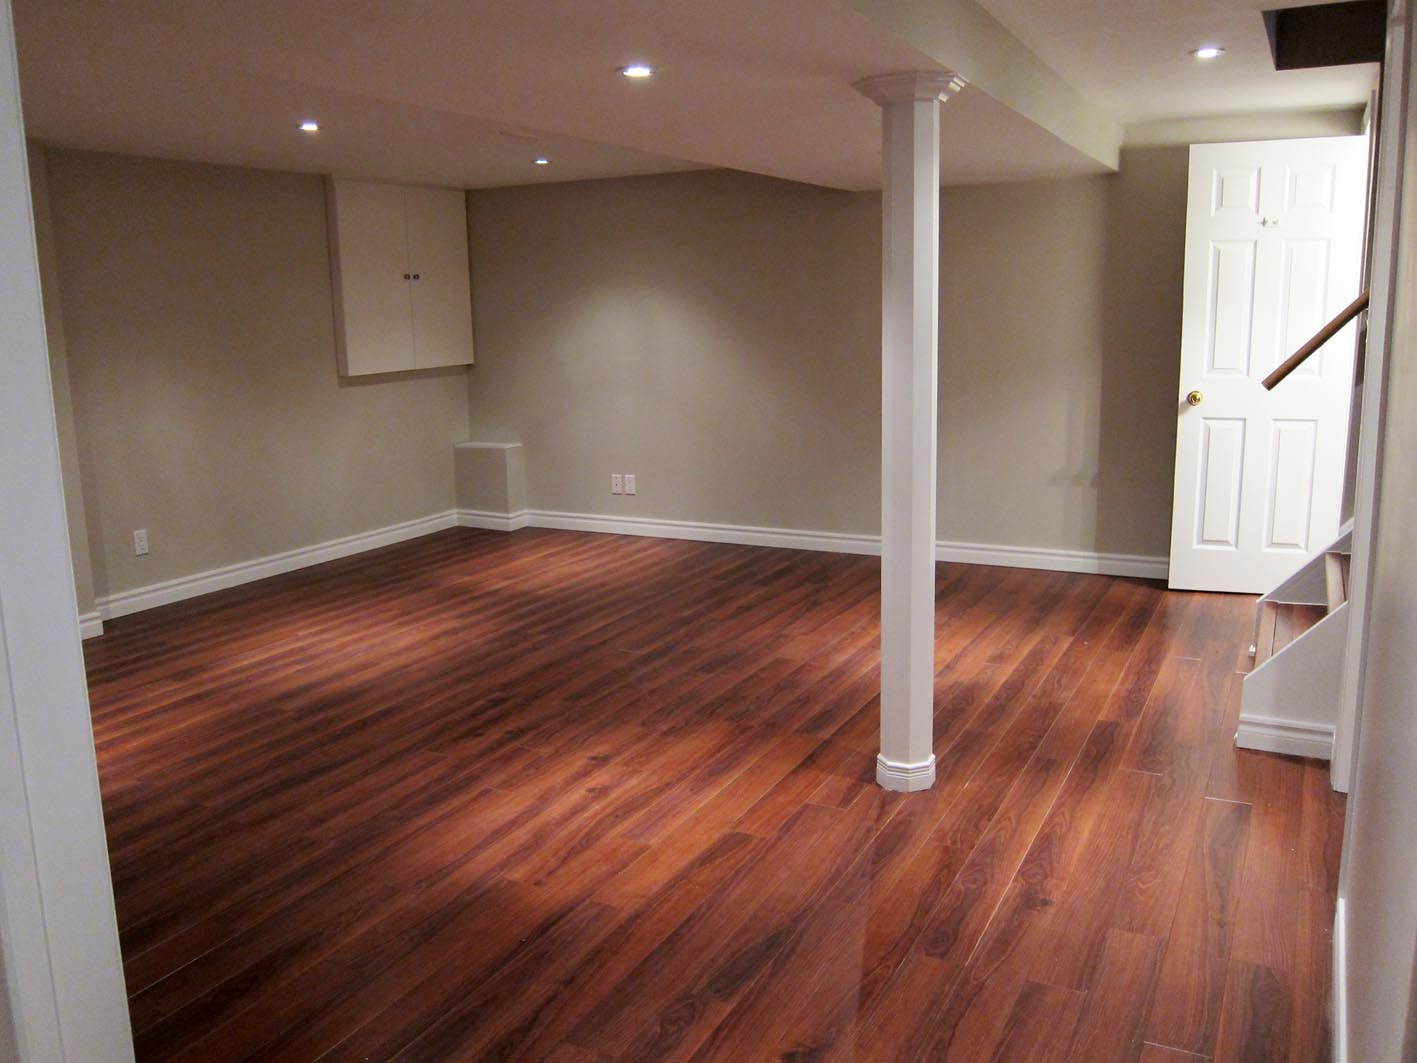 Before & Afters: Basement Renovation